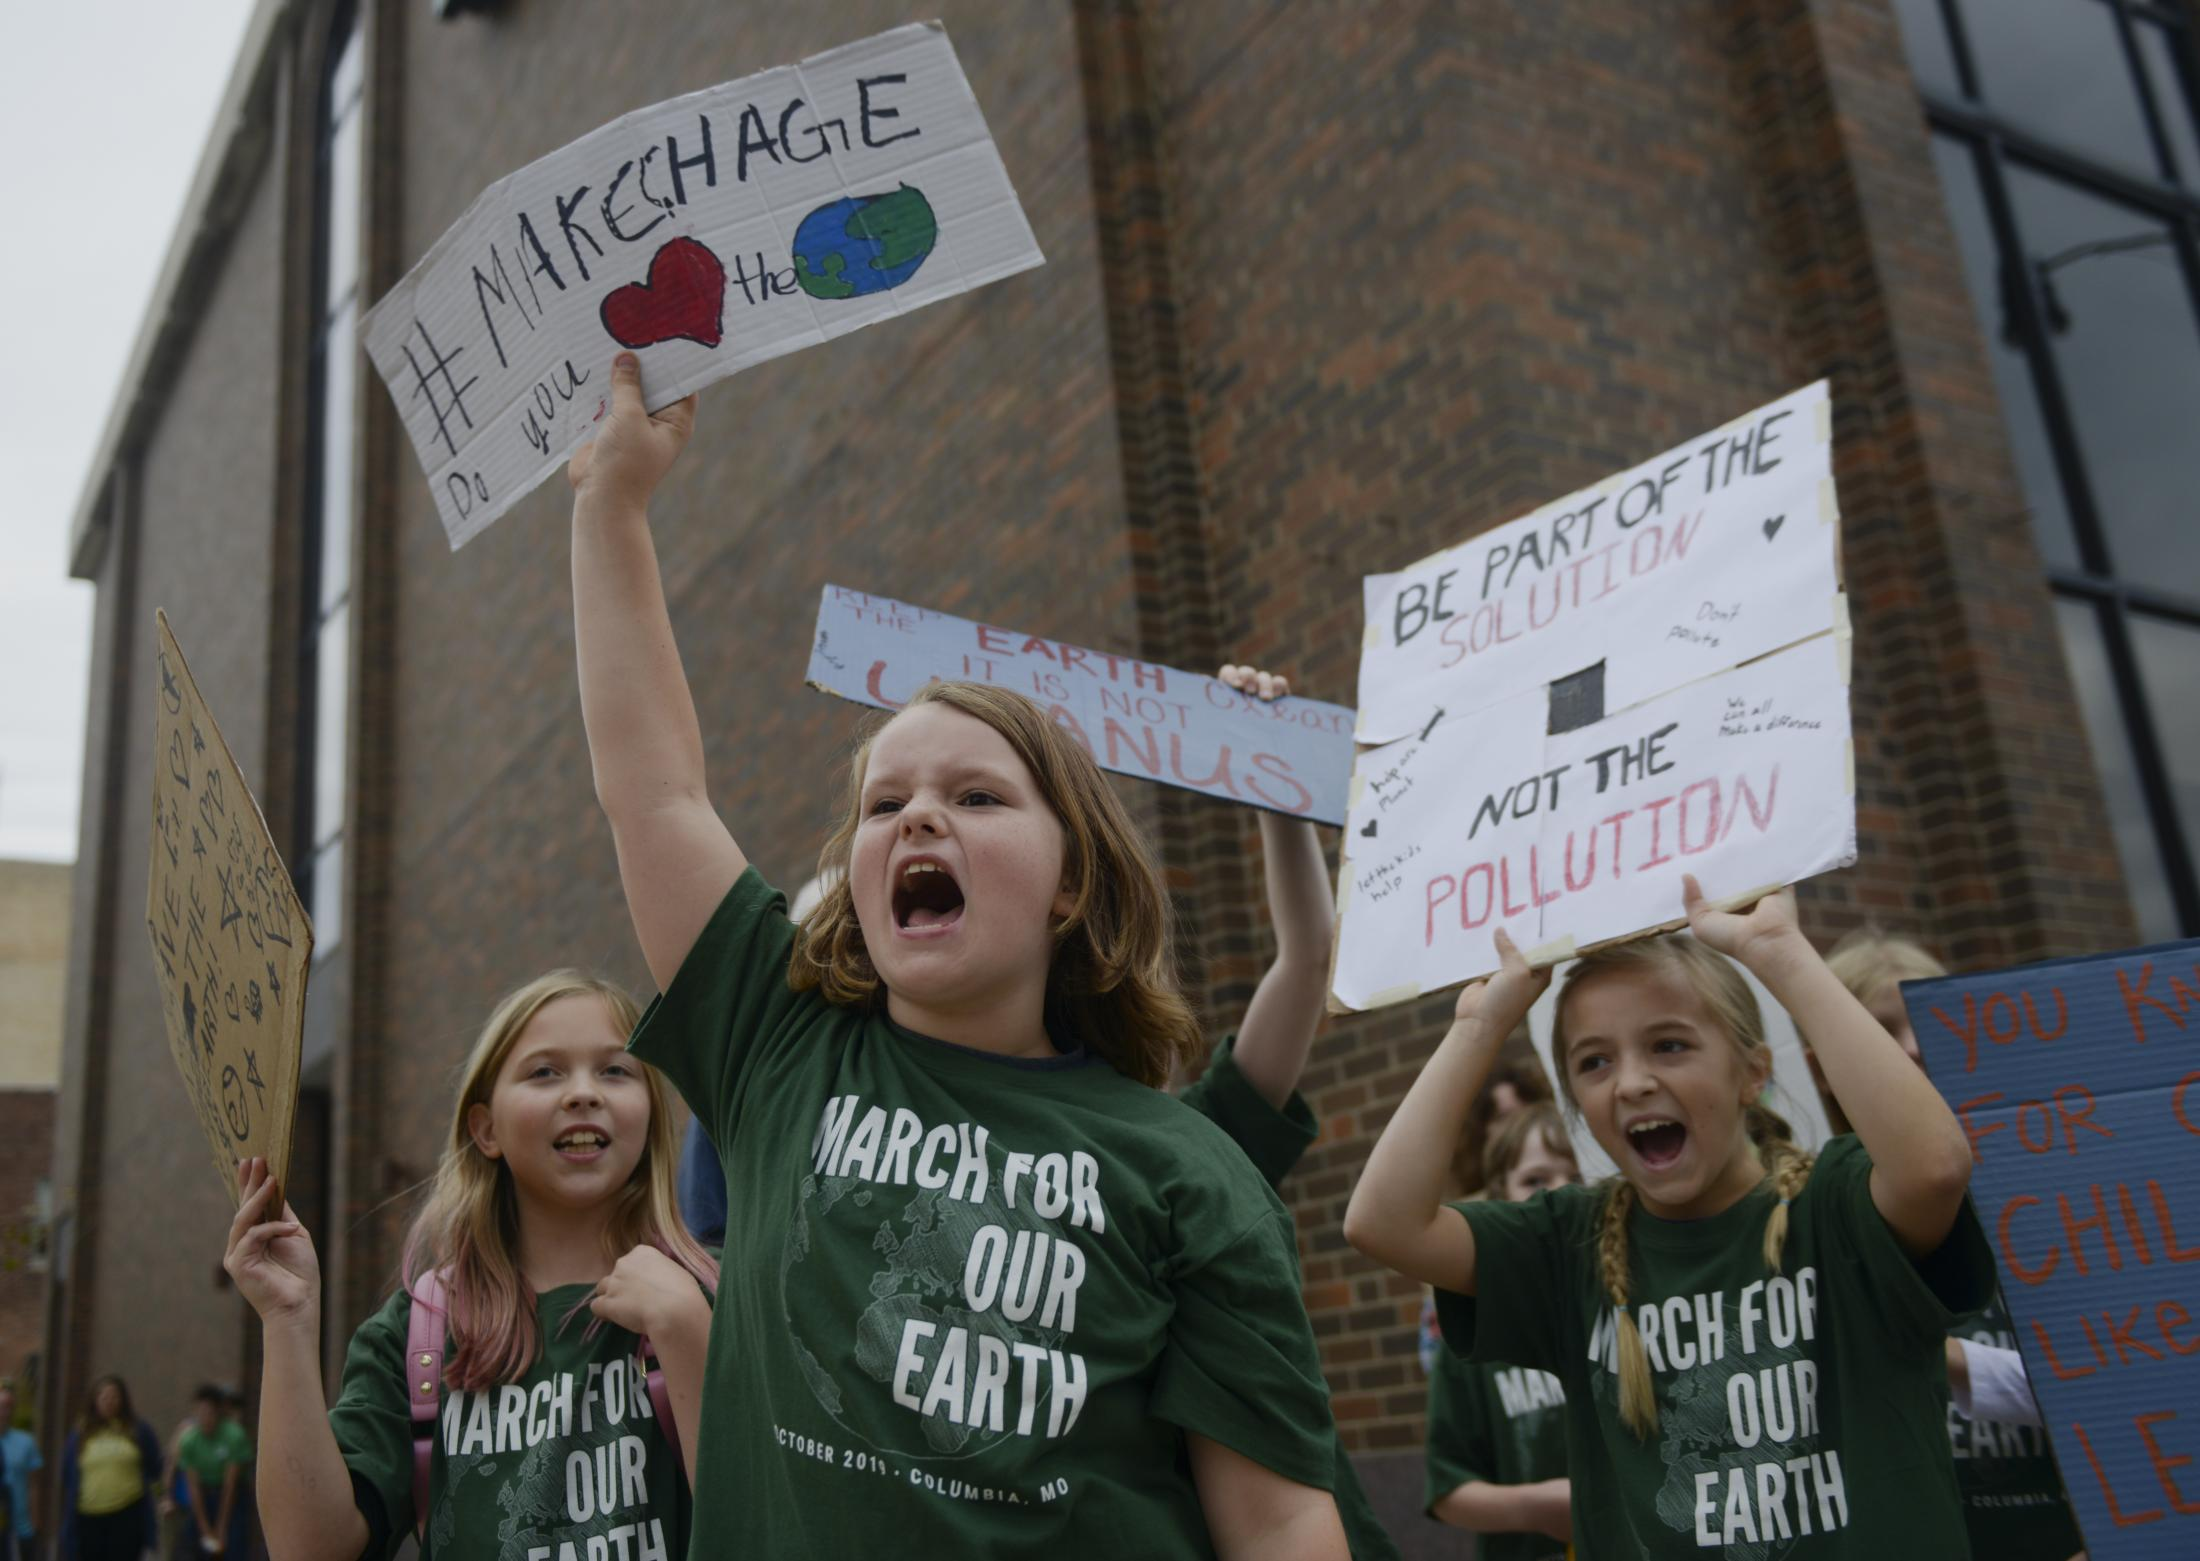 Emma Winter chants while marching at March for Our Earth on Oct. 6, 2019 in downtown Columbia, Missouri. Winter, a fourth-grader at Grant Elementary School, organized the march to raise awareness for climate change.